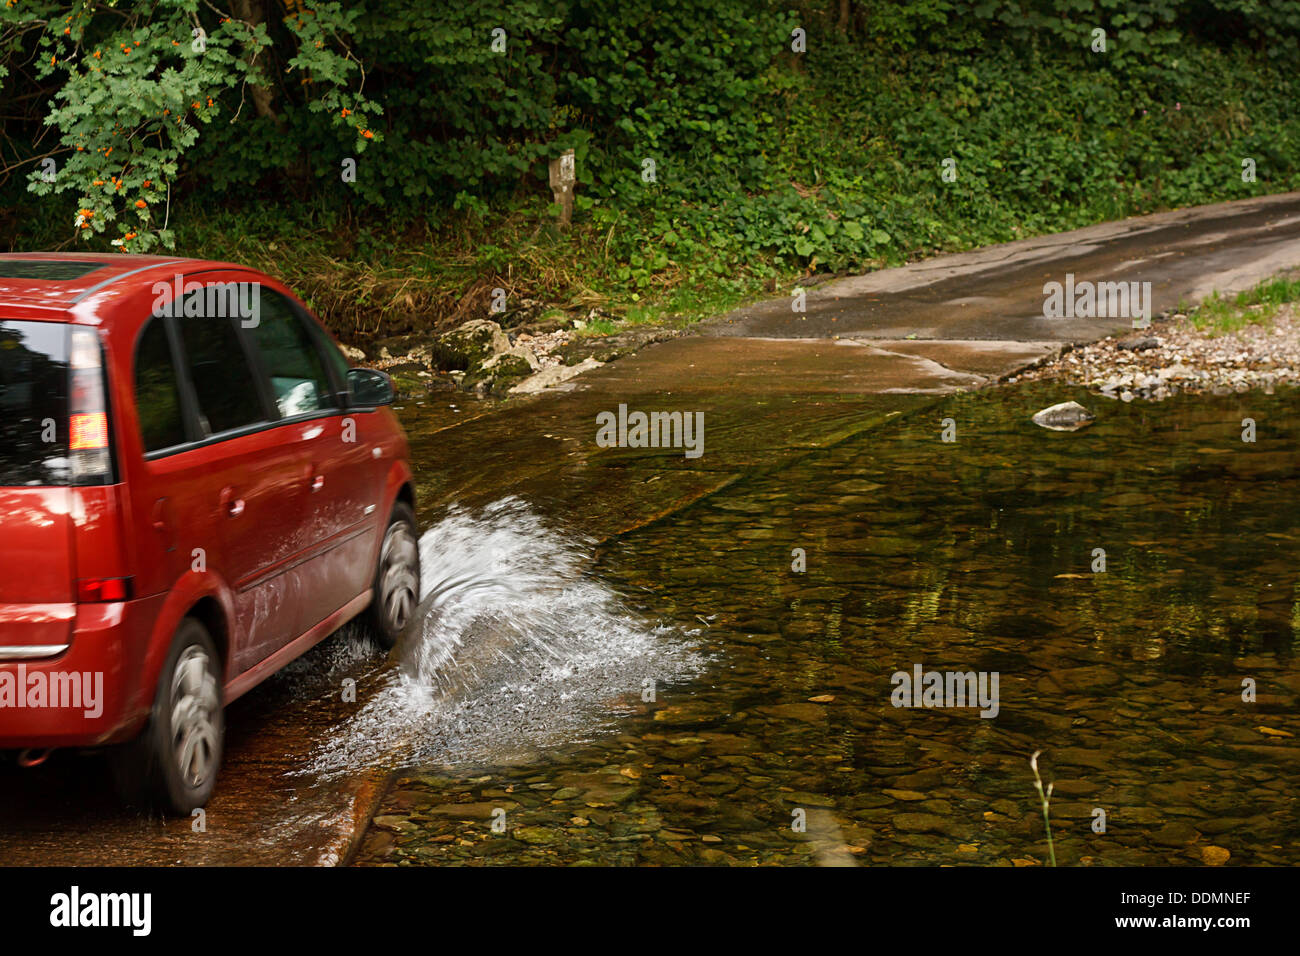 Family Car fording a river at ford an old fashioned way of crossing water without building a bridge - Stock Image